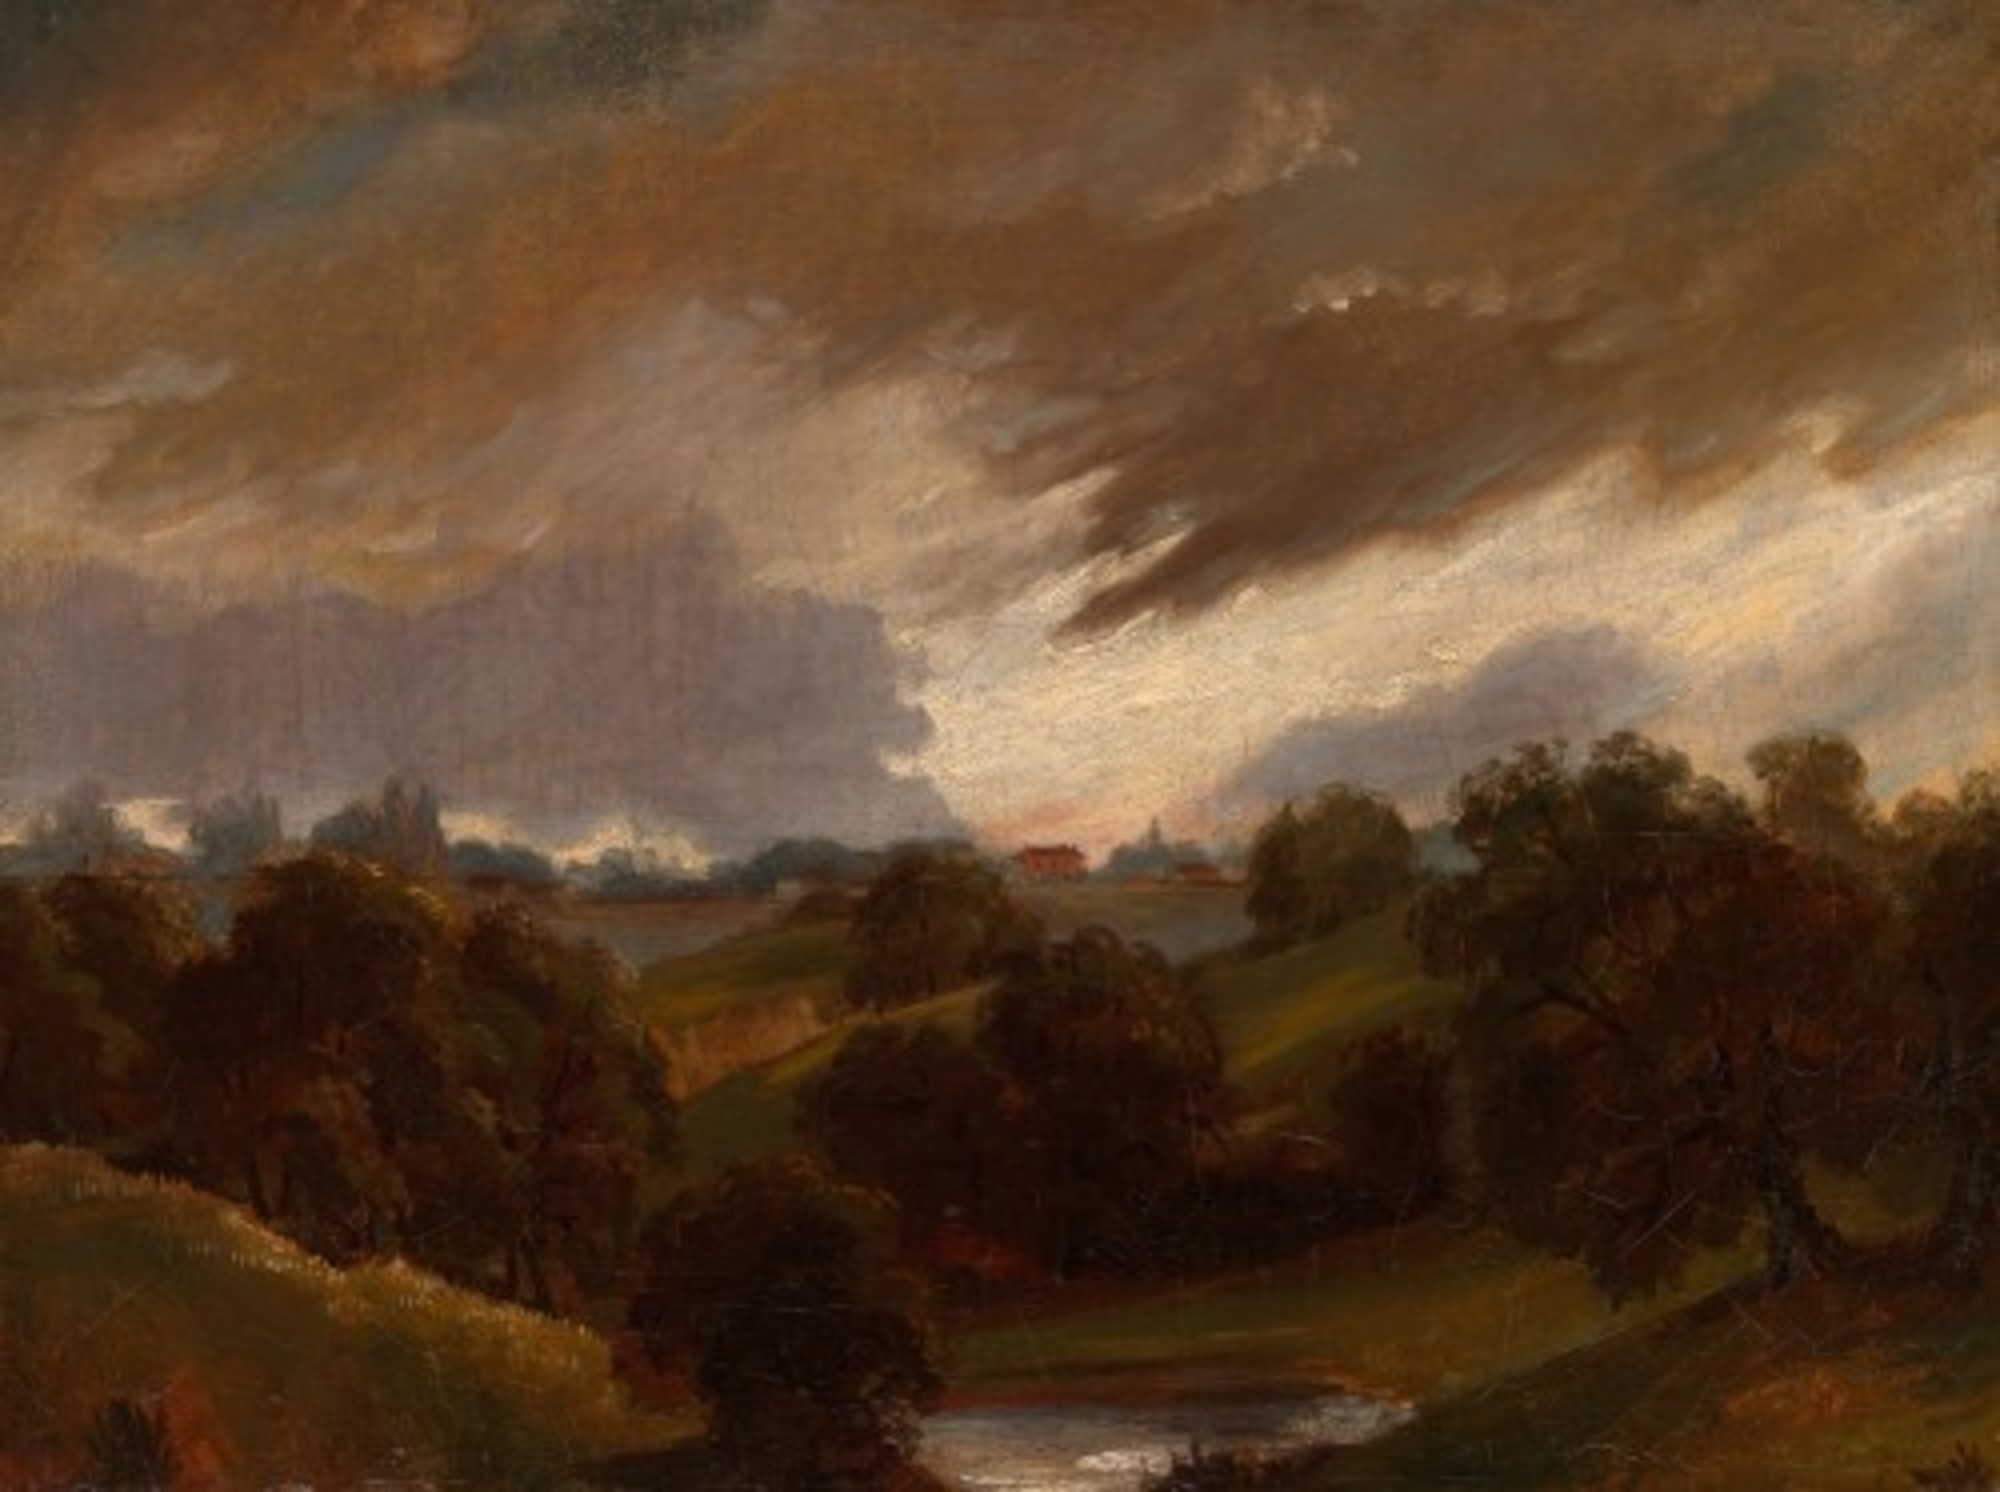 John Constable Hampstead, Stormy Sky 1974.387 Art Institute of Chicago